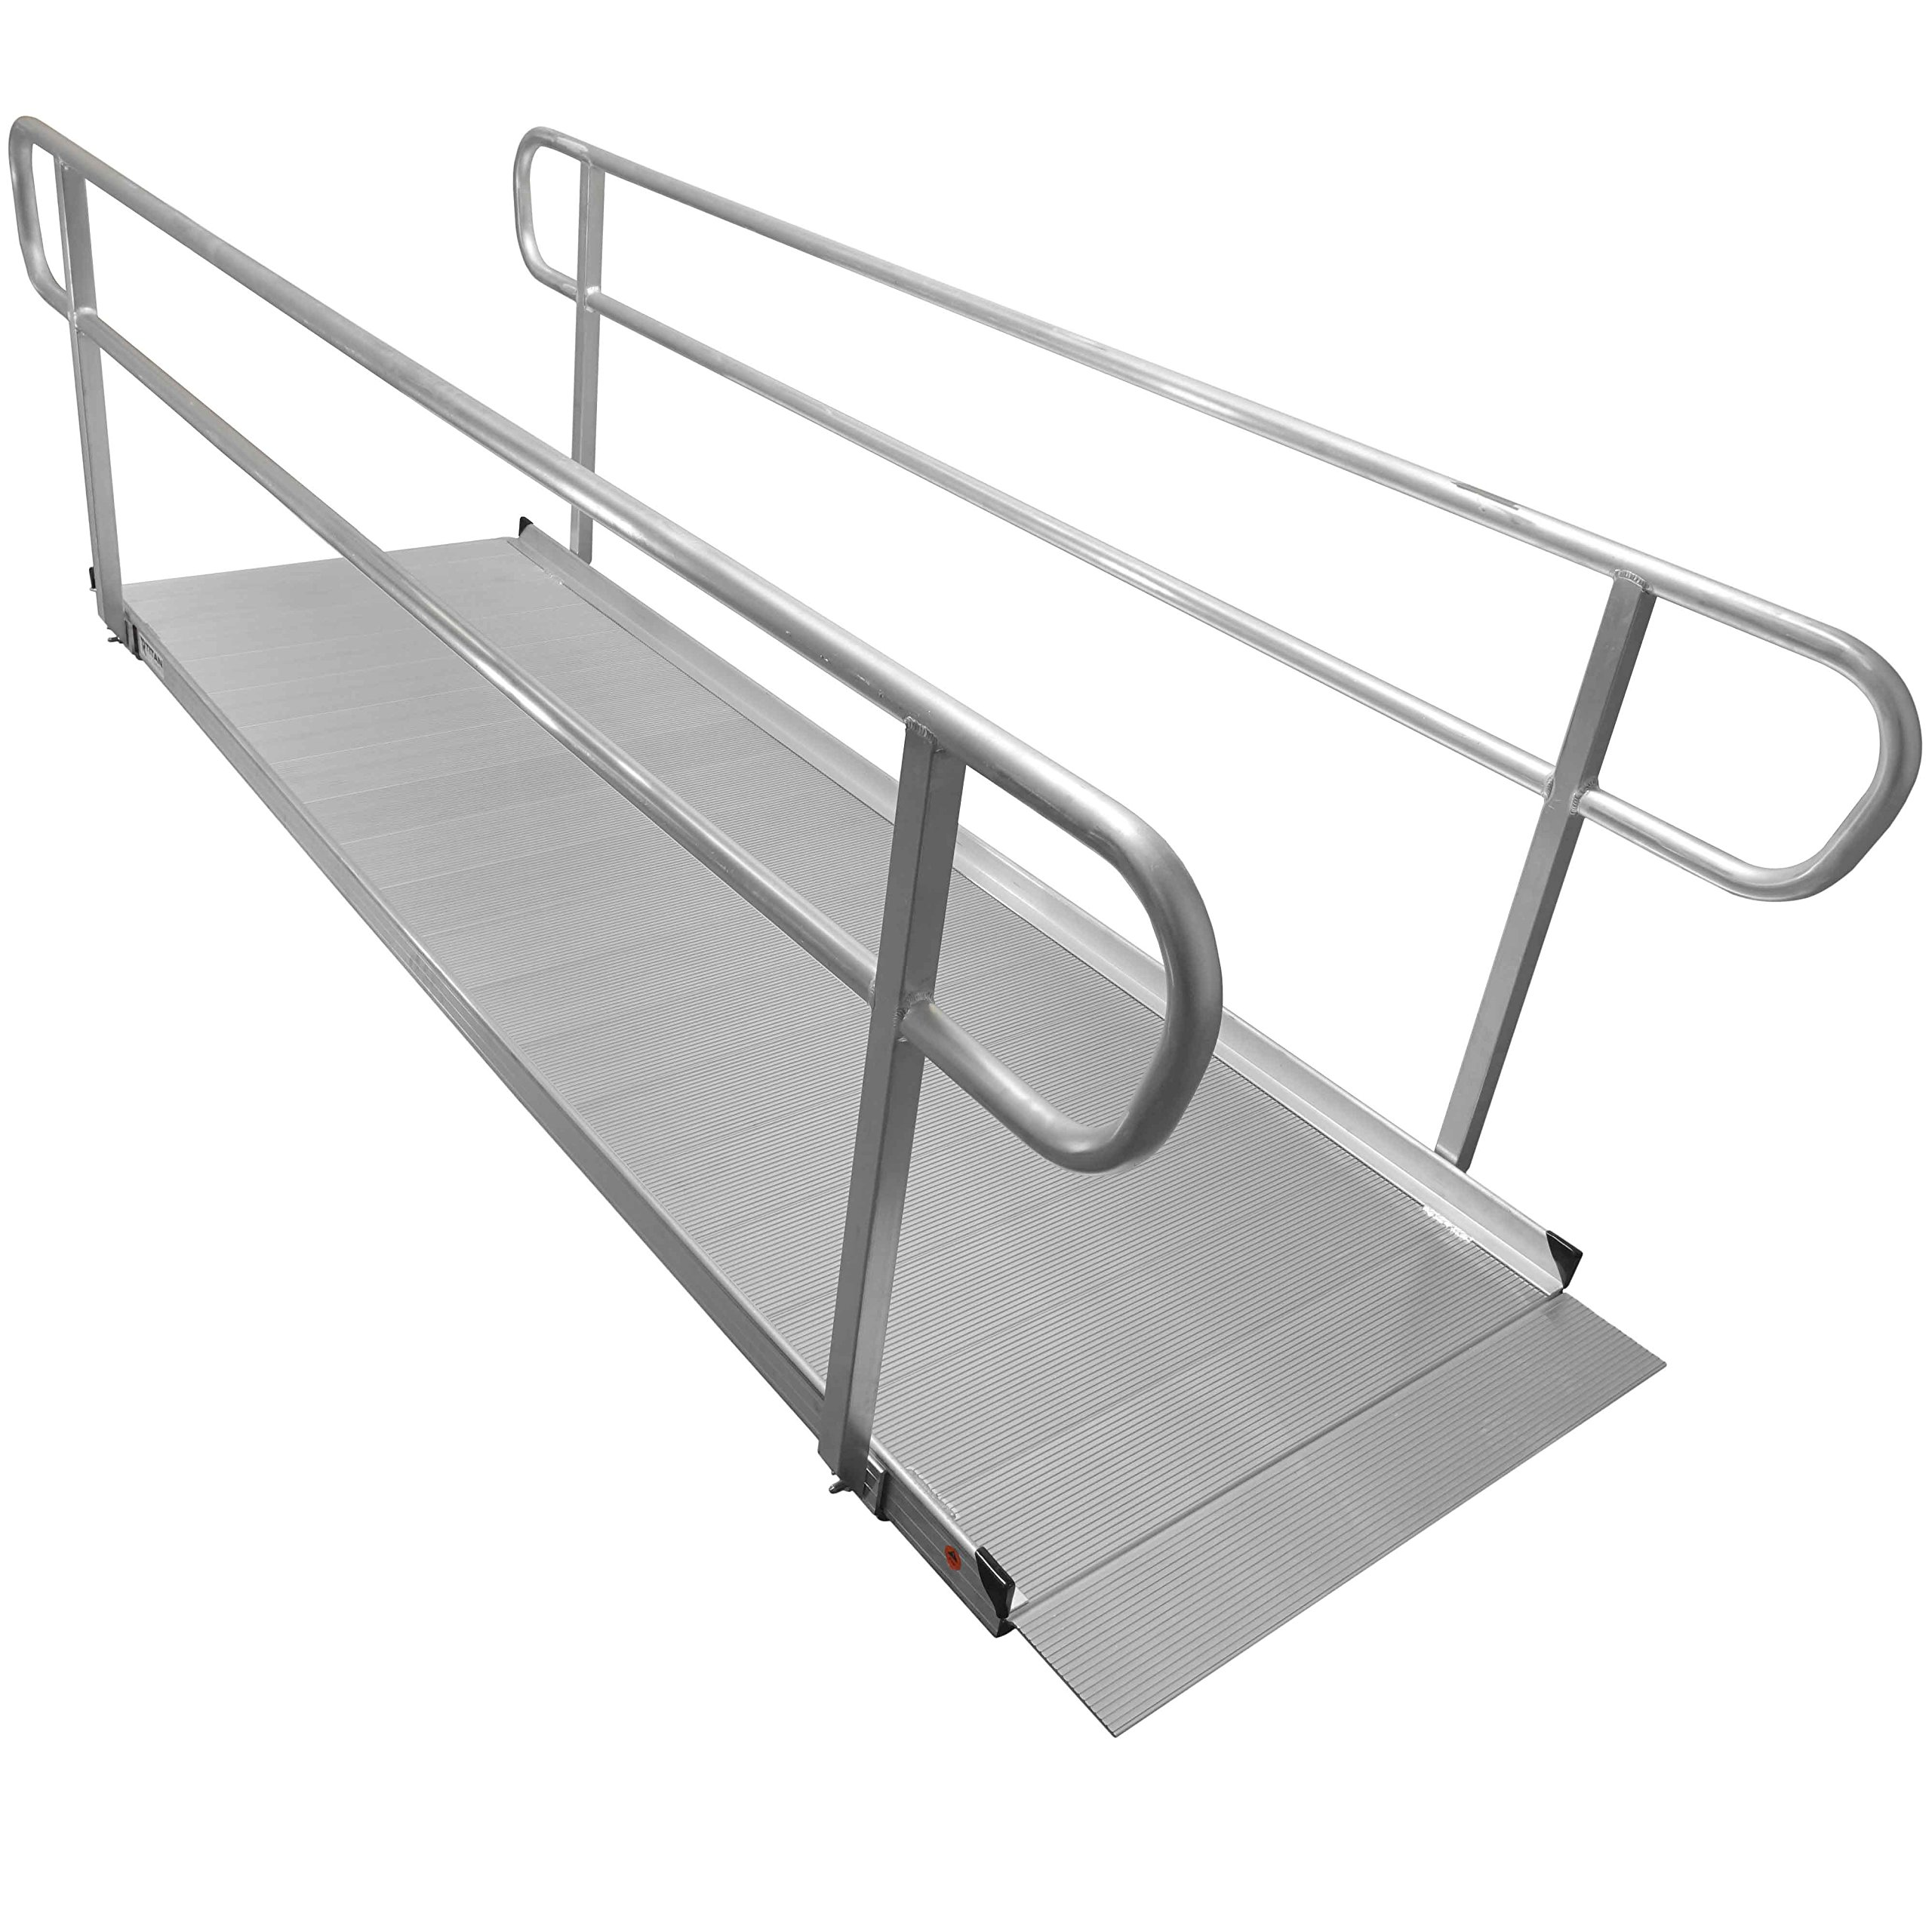 10′ Aluminum Wheelchair Entry Ramp & Handrails Solid Surface Scooter Mobility Access